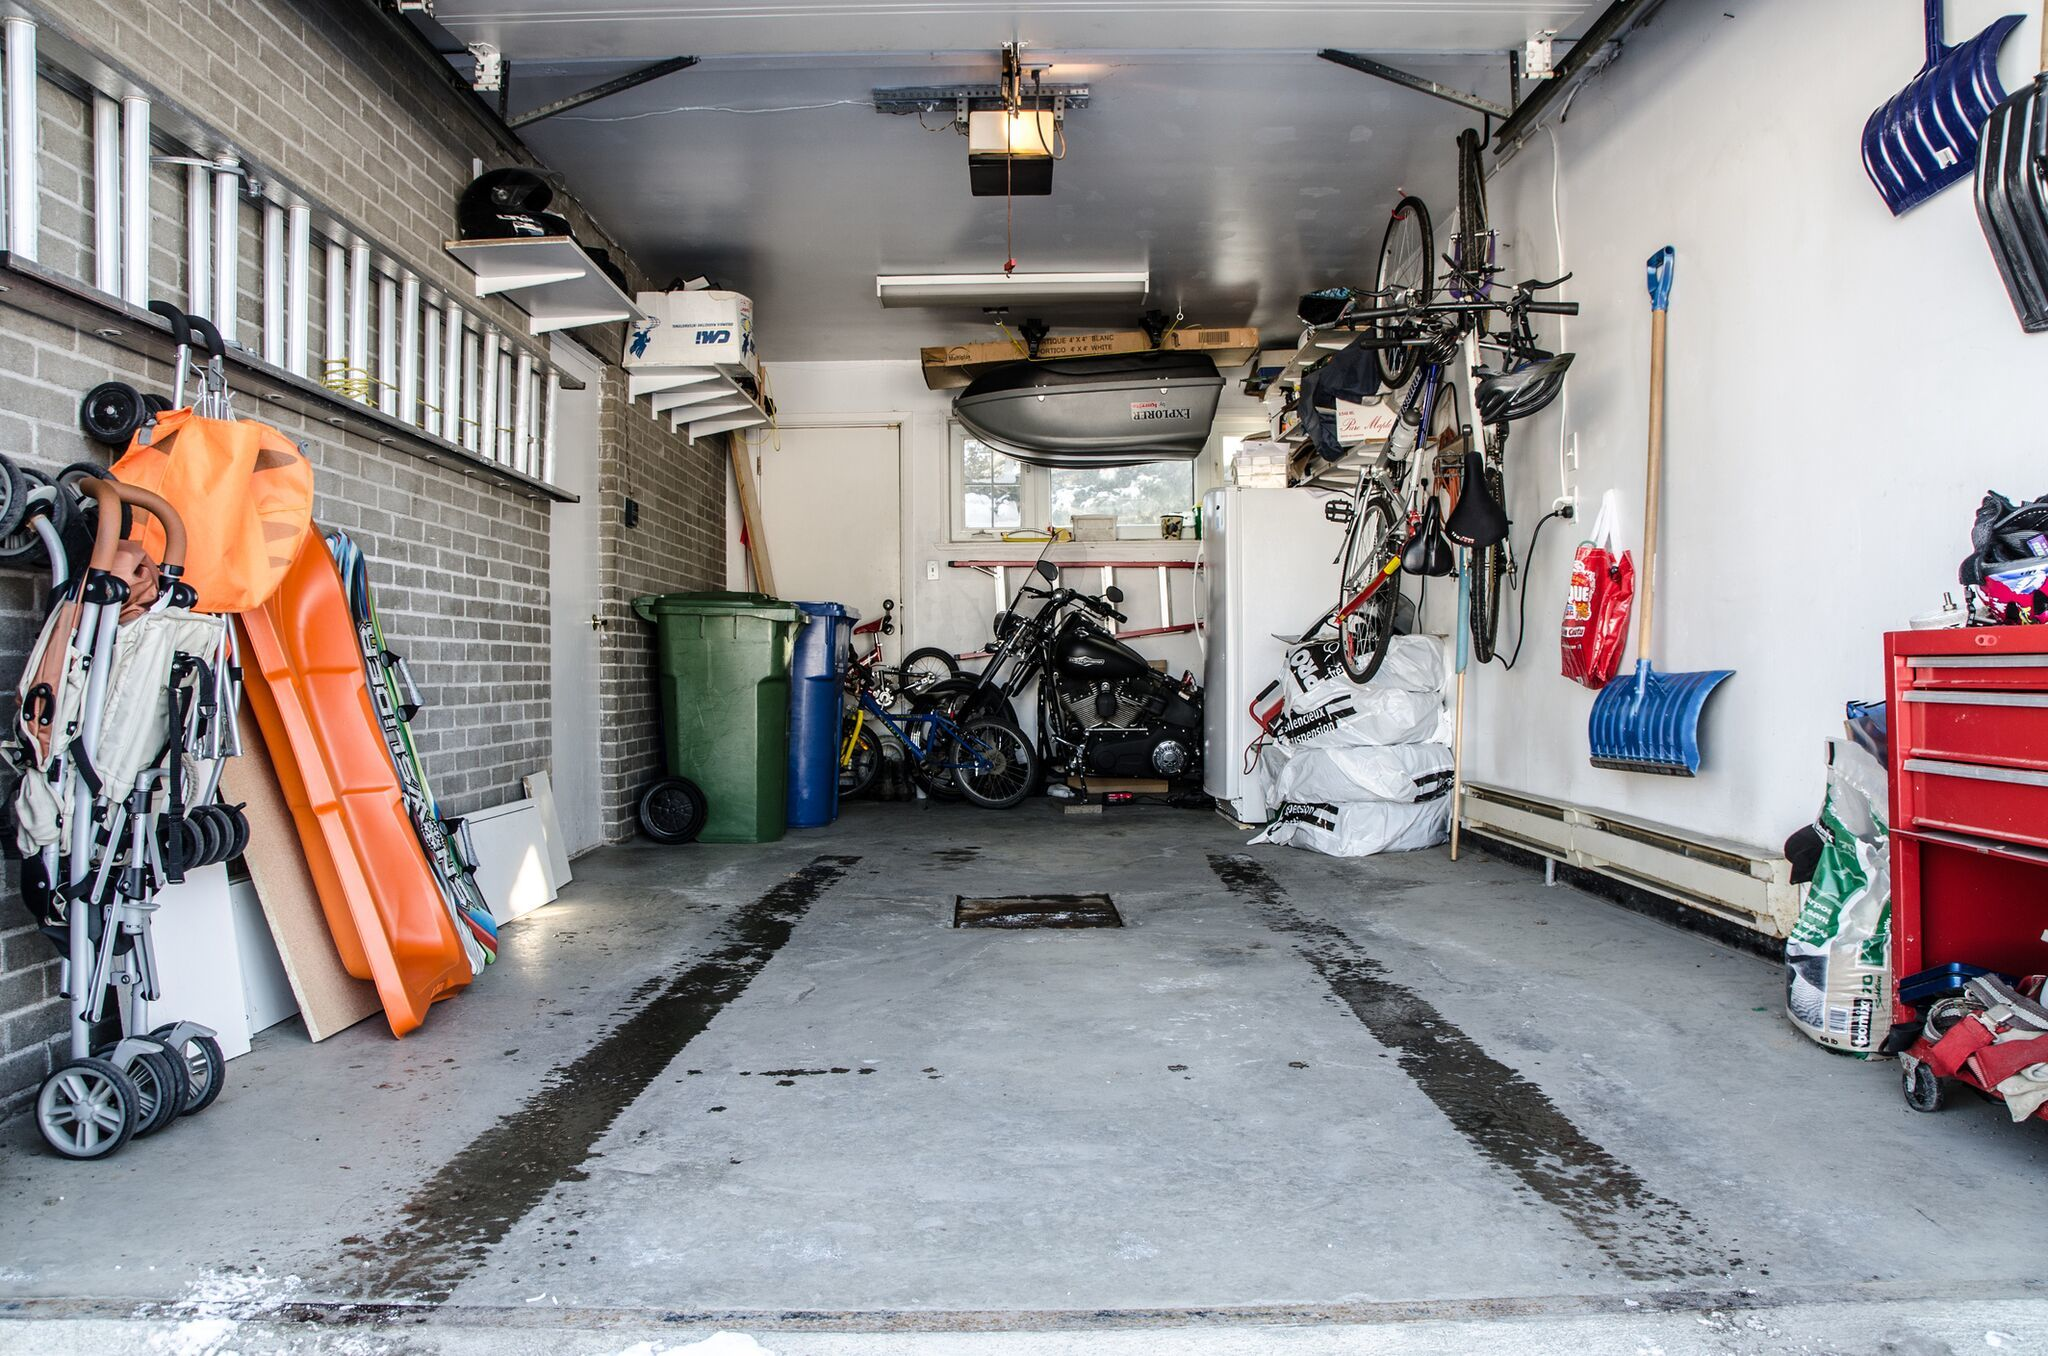 Garage Clean Up Keep Things Organized This Winter